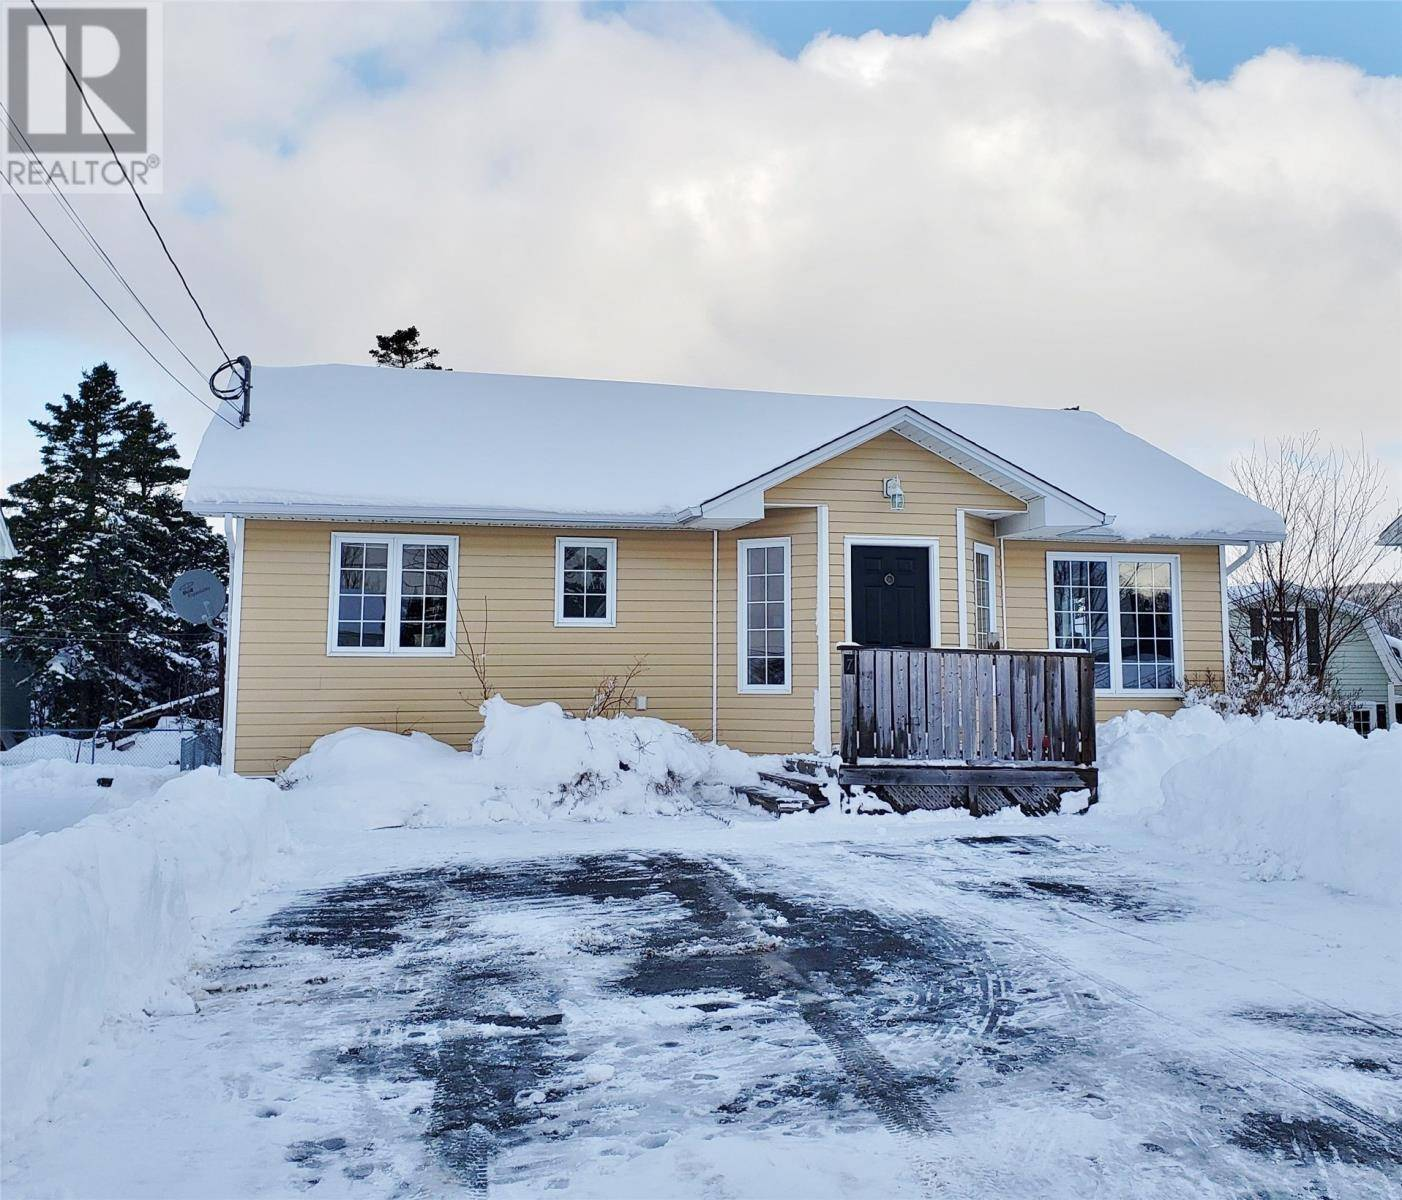 House for sale at 7 Haddons Pl Conception Bay South Newfoundland - MLS: 1211747